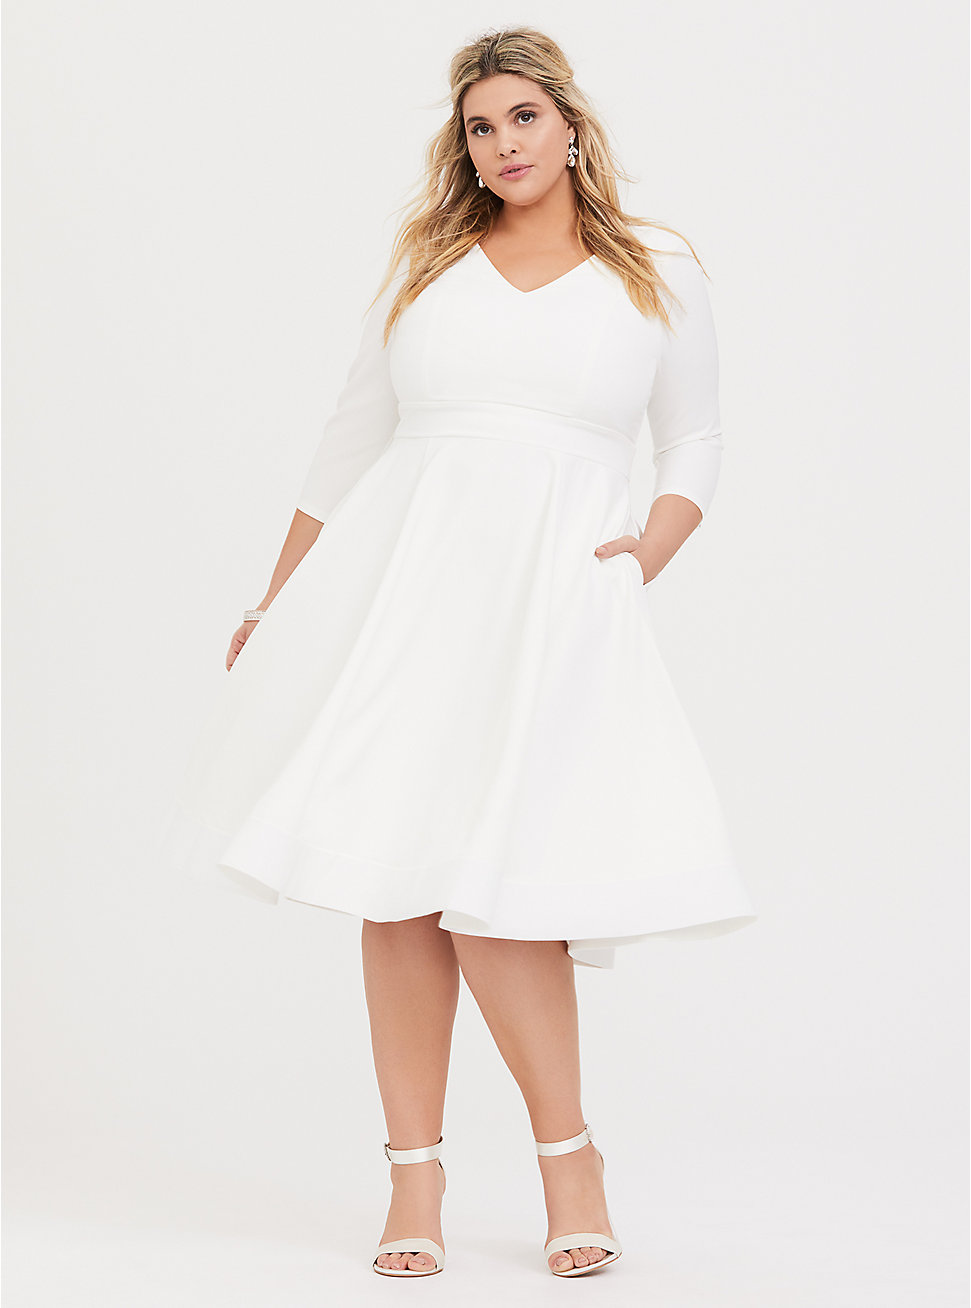 Special Occasion Ivory Fit Flare Dress Flare Dress Dresses White Lace Midi Dress [ 1308 x 971 Pixel ]